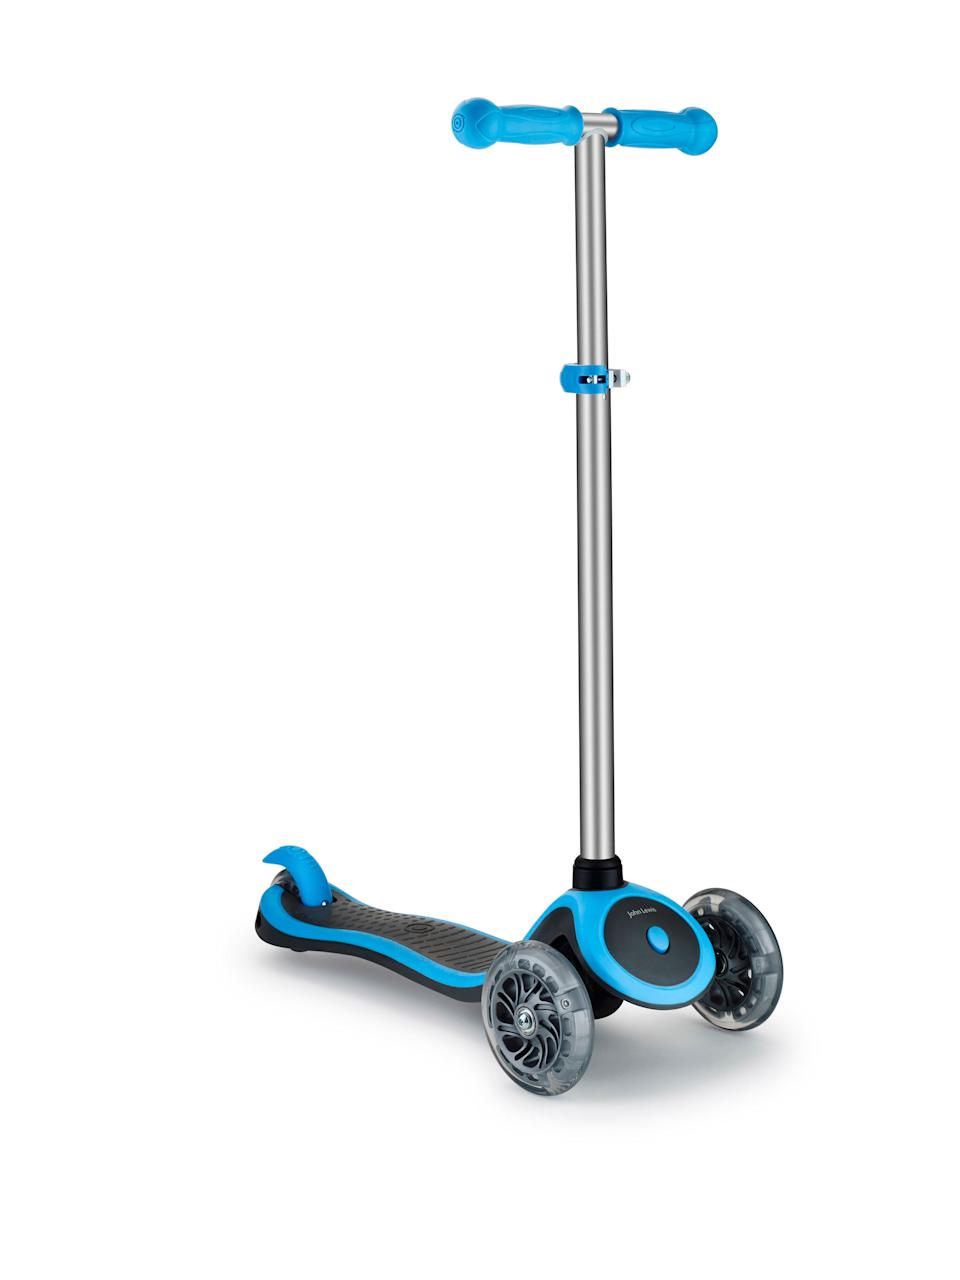 The latest scooter from John Lewis has a low deck for stability and is suitable from kids age three and upwards.<br />Price: £49.99